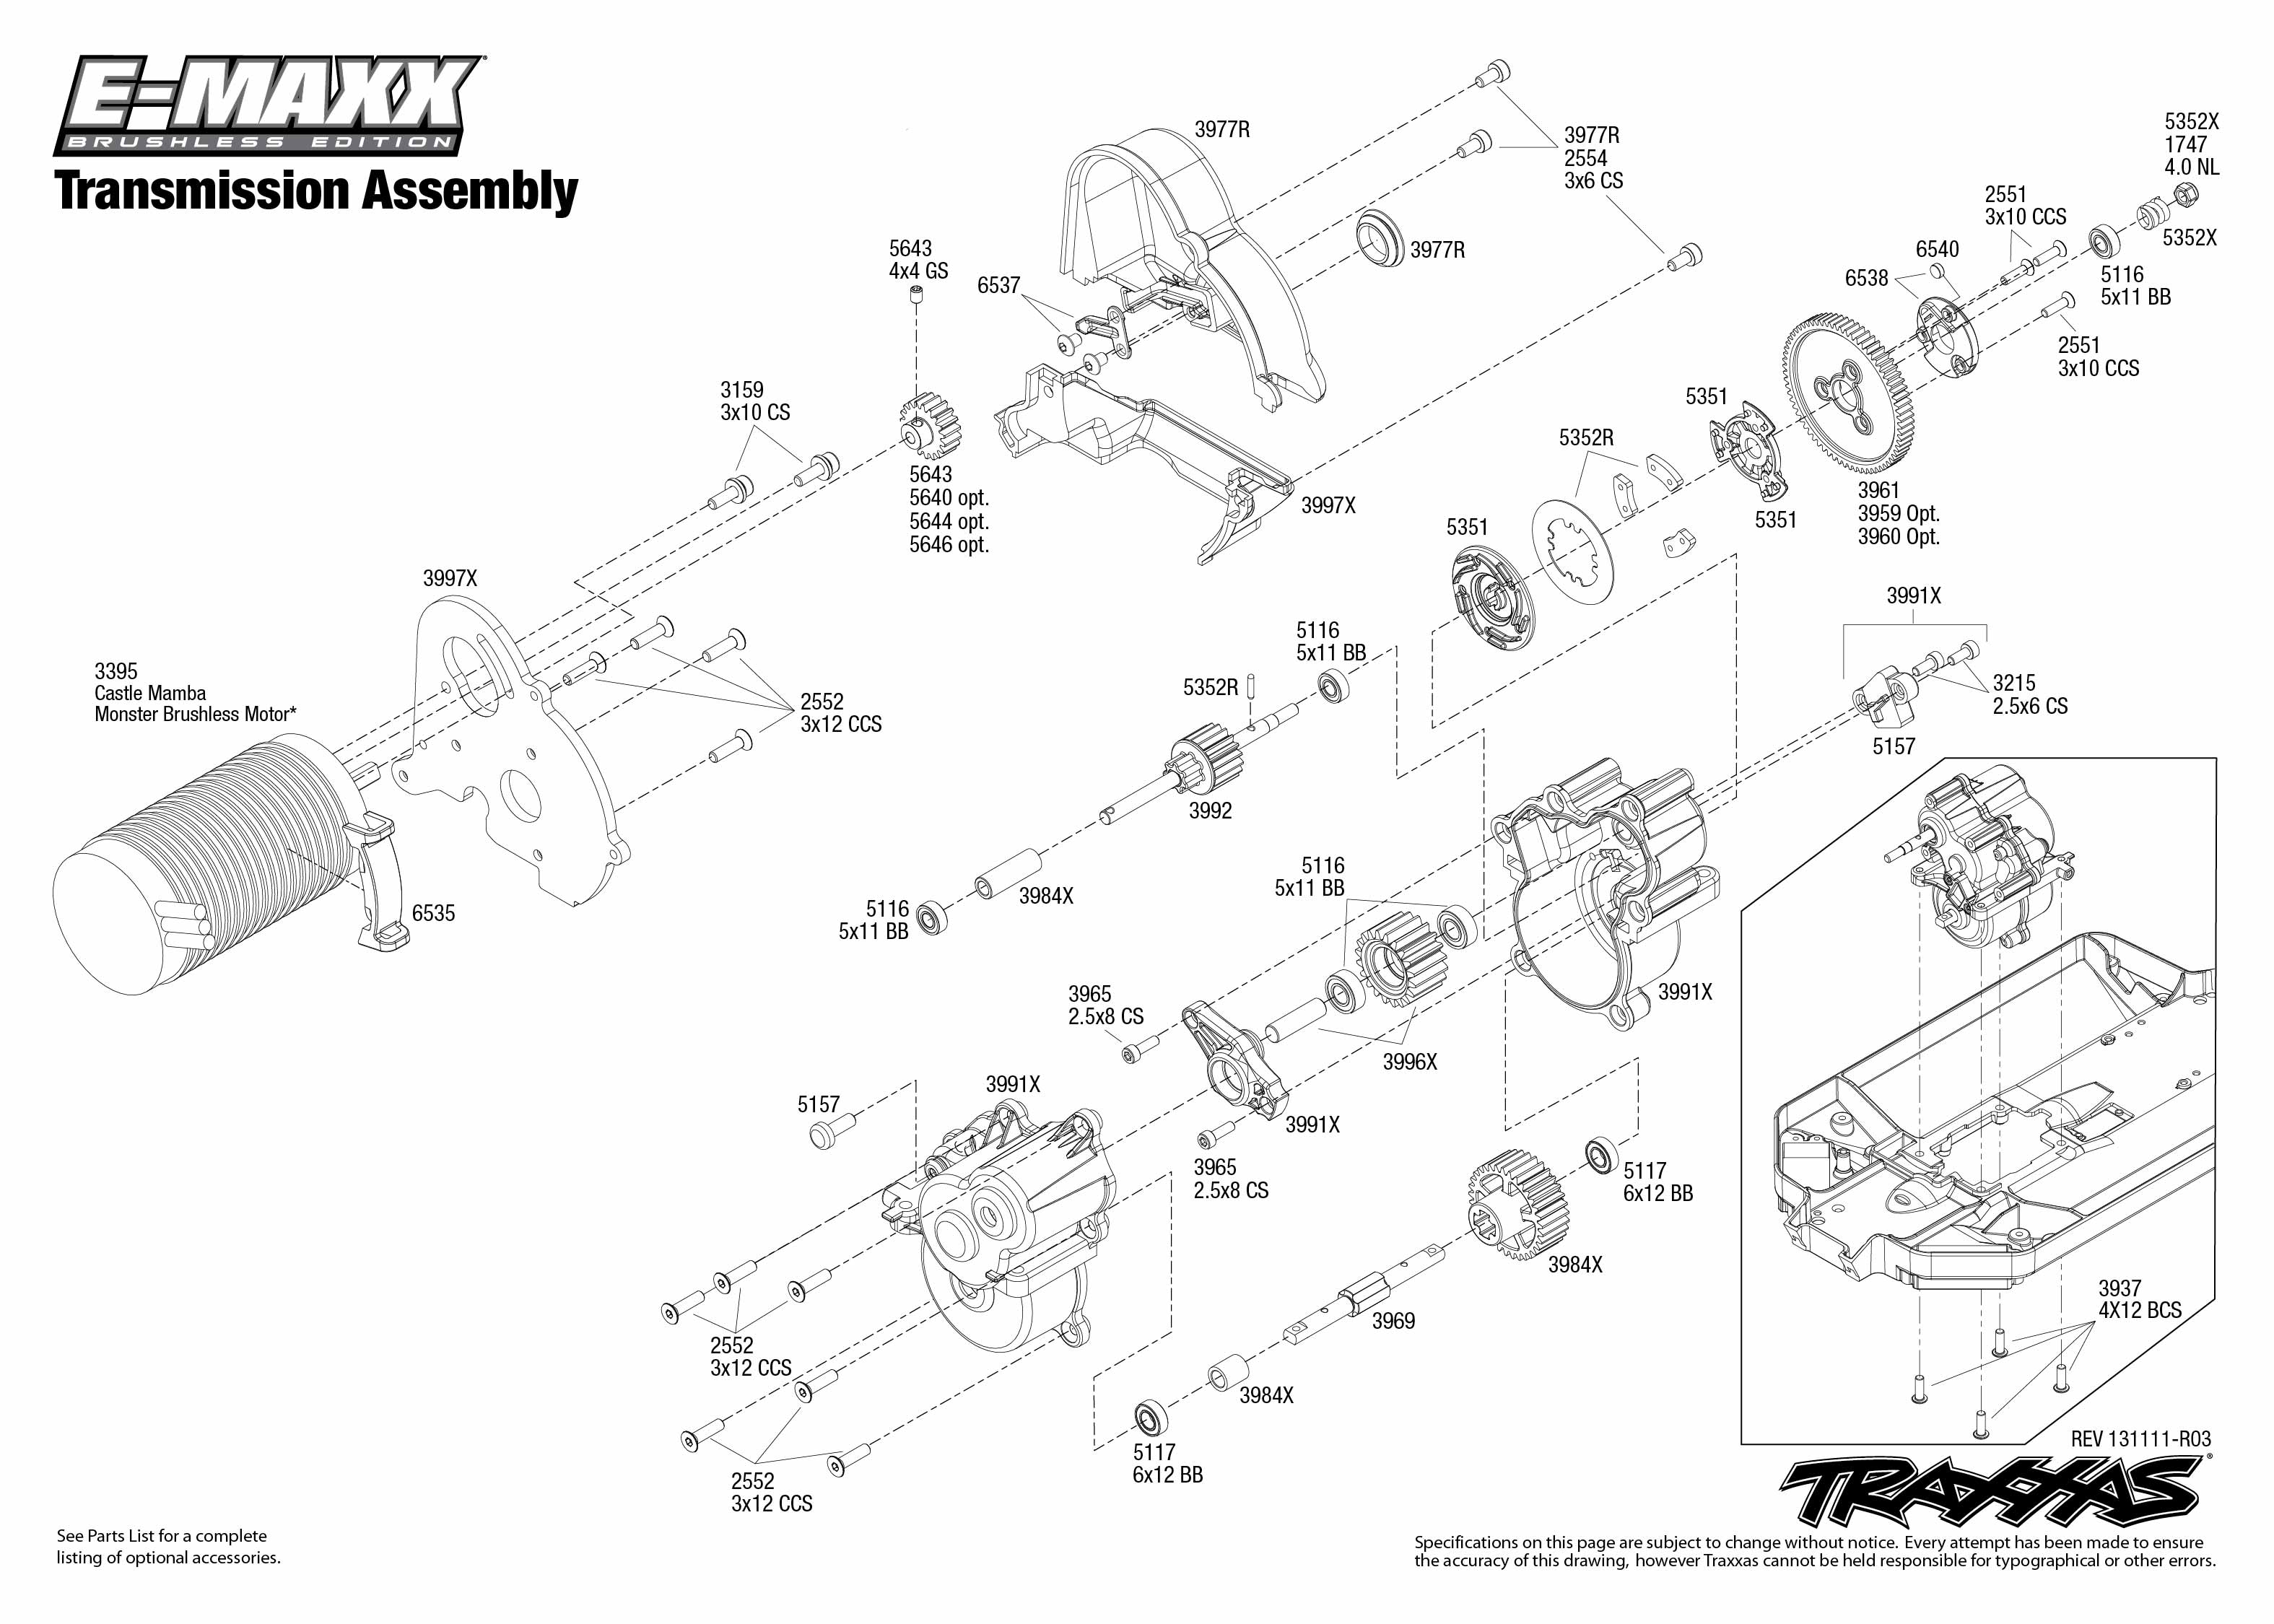 Breathtaking traxxas revo 3 3 parts diagram gallery best image e revo brushless parts diagram image collections diagram design pooptronica Images